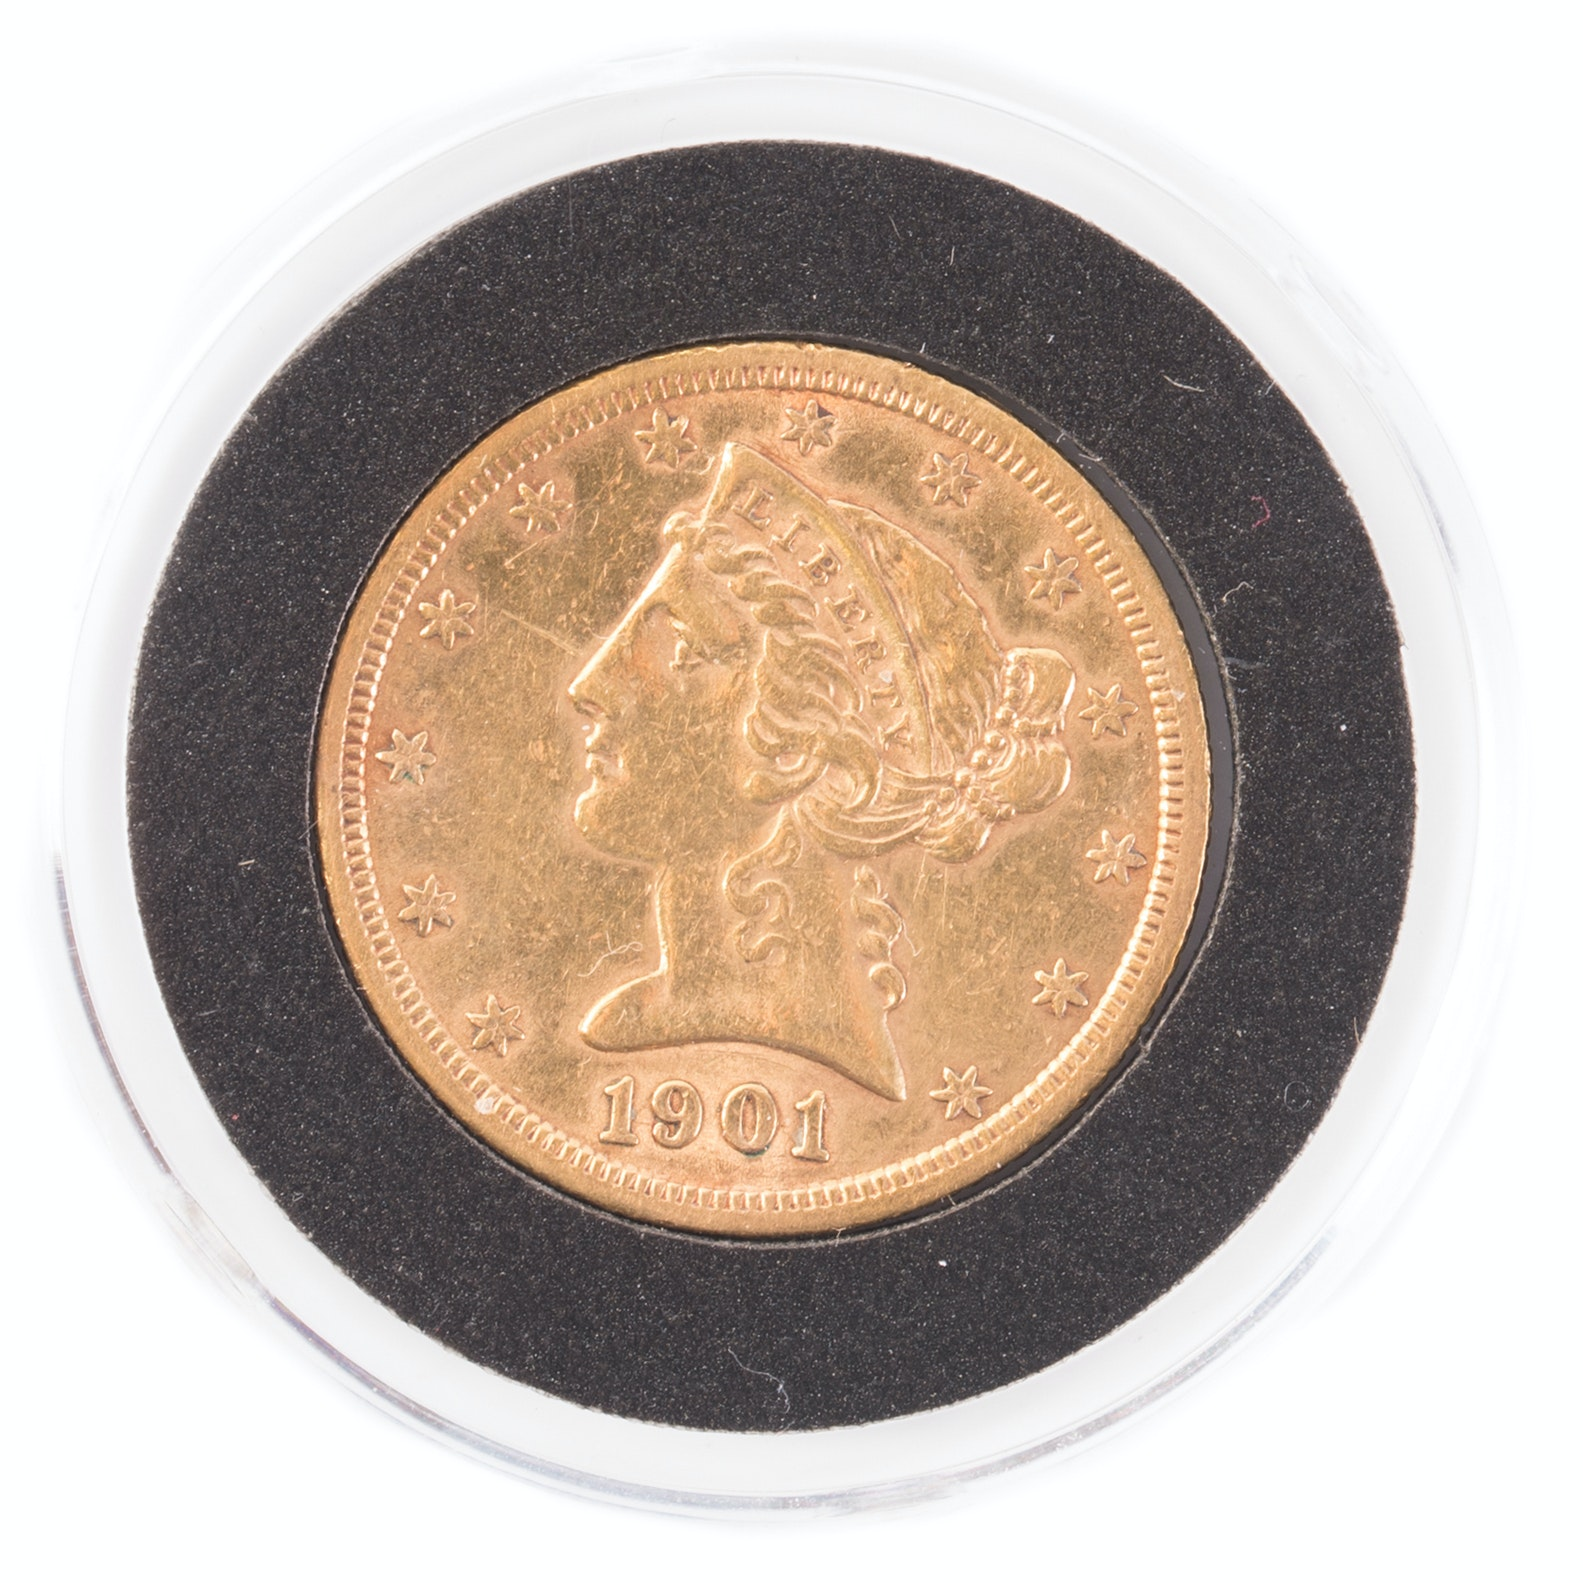 1901 S Liberty Head $5 Gold Coin